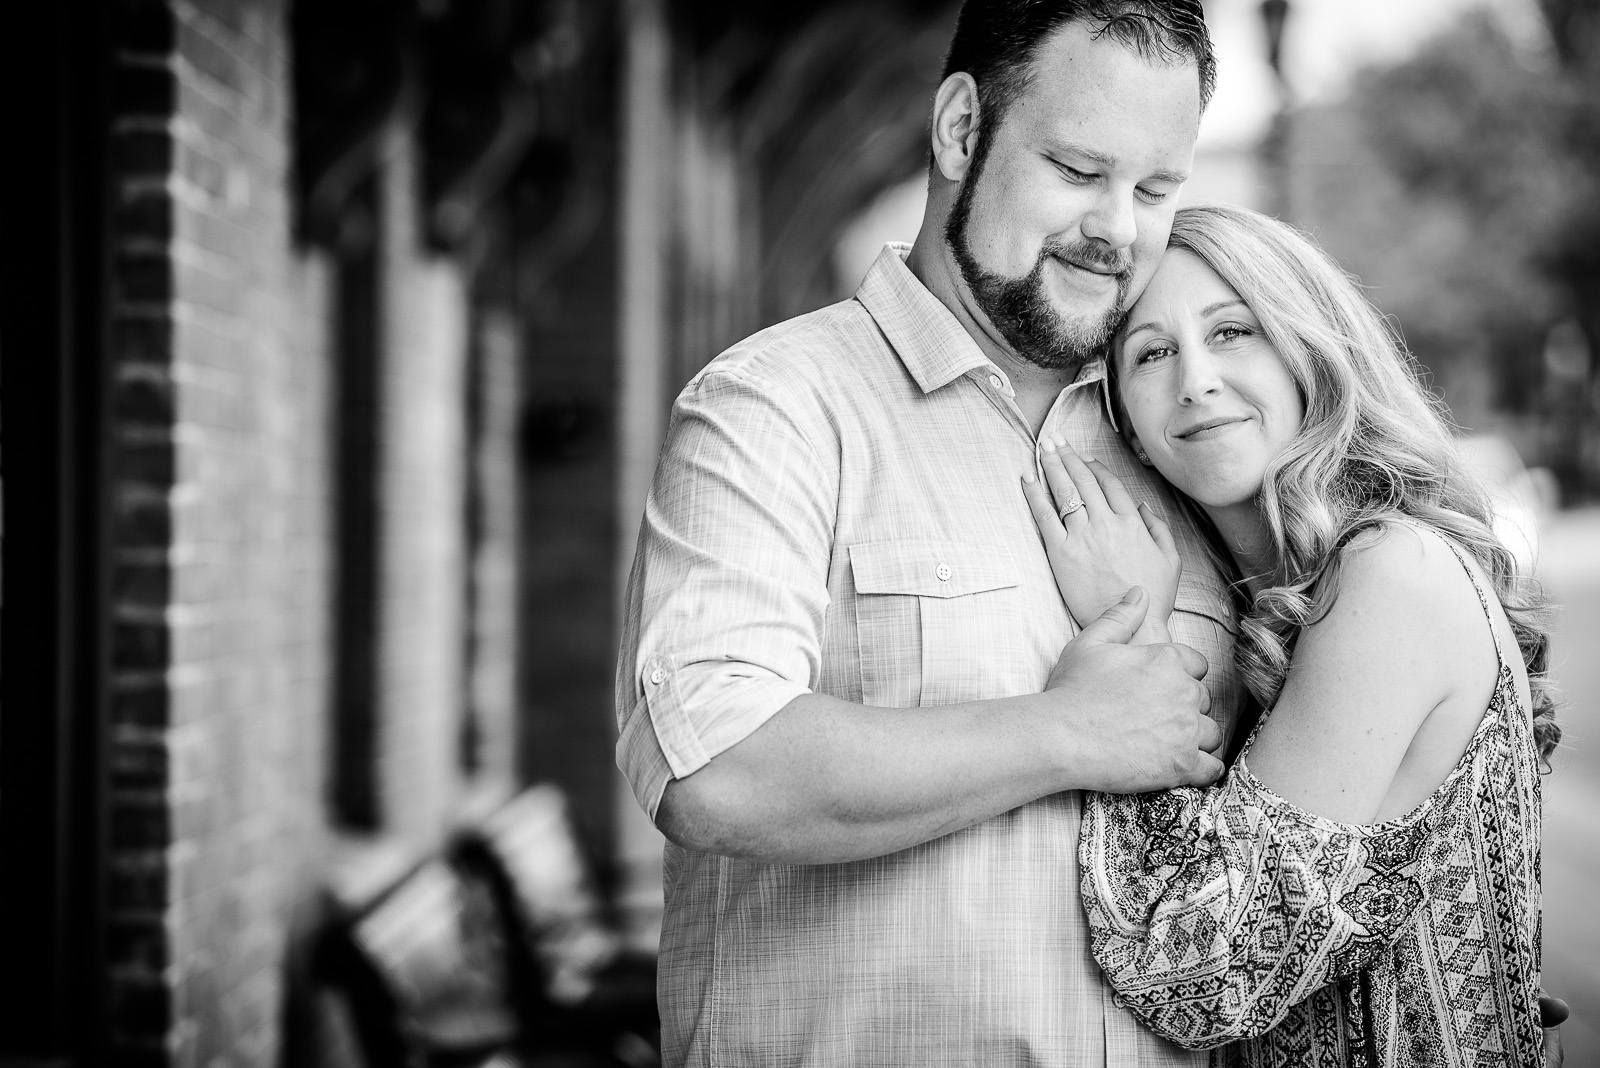 Eric_and_Christy_Photography_Blog_Kelly_Matt_Engagement-4